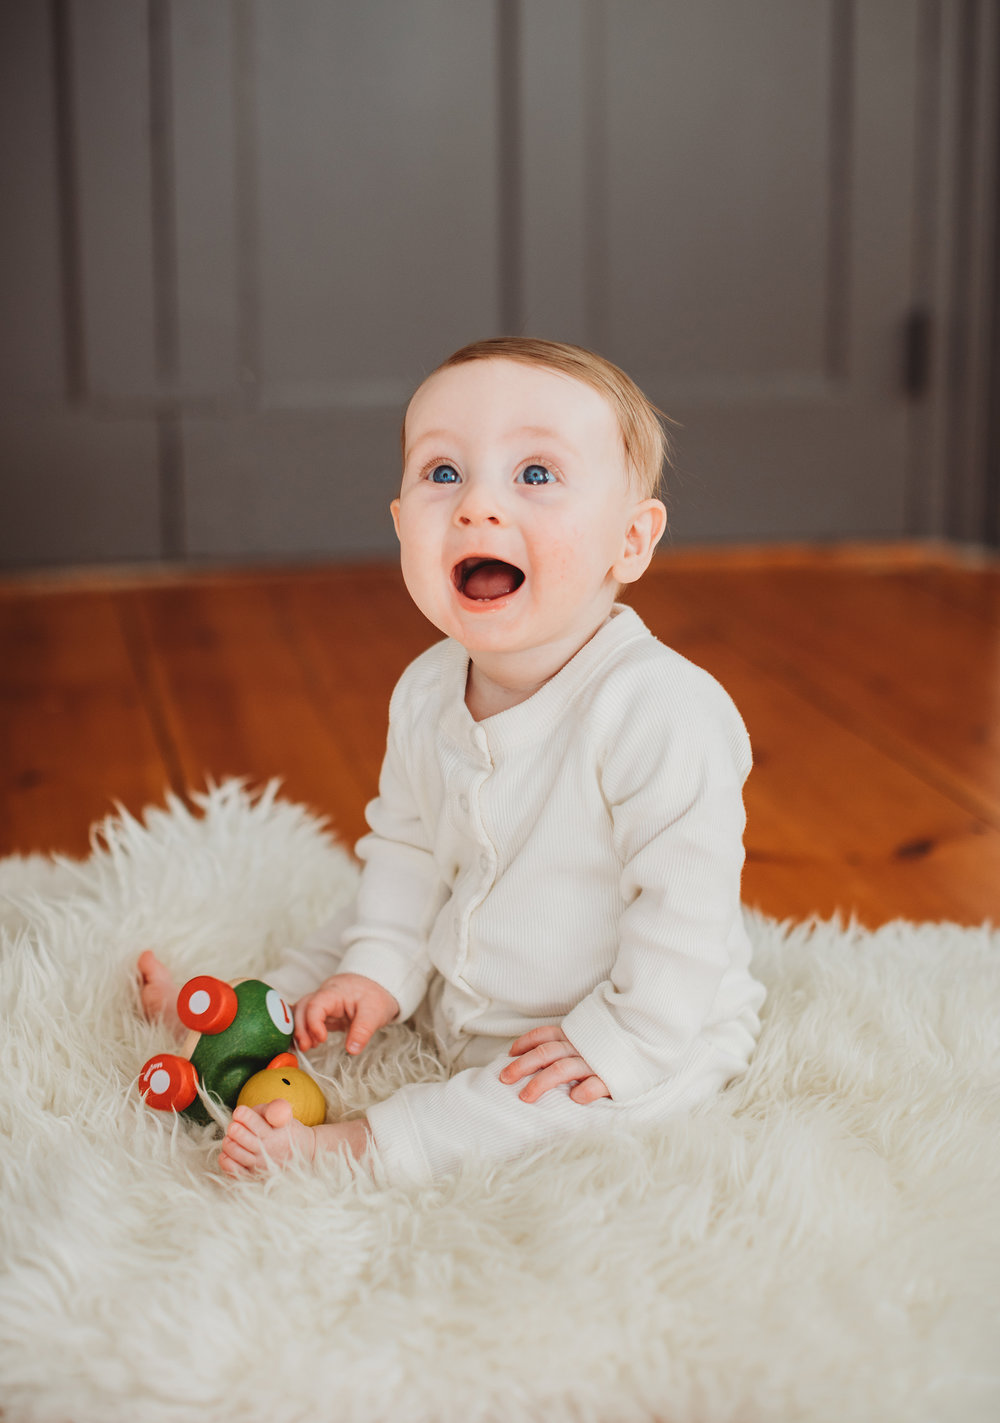 Solid basics are always a great option for baby photo sessions. Baby photographer Boston, Sudbury family photographer, natural light.